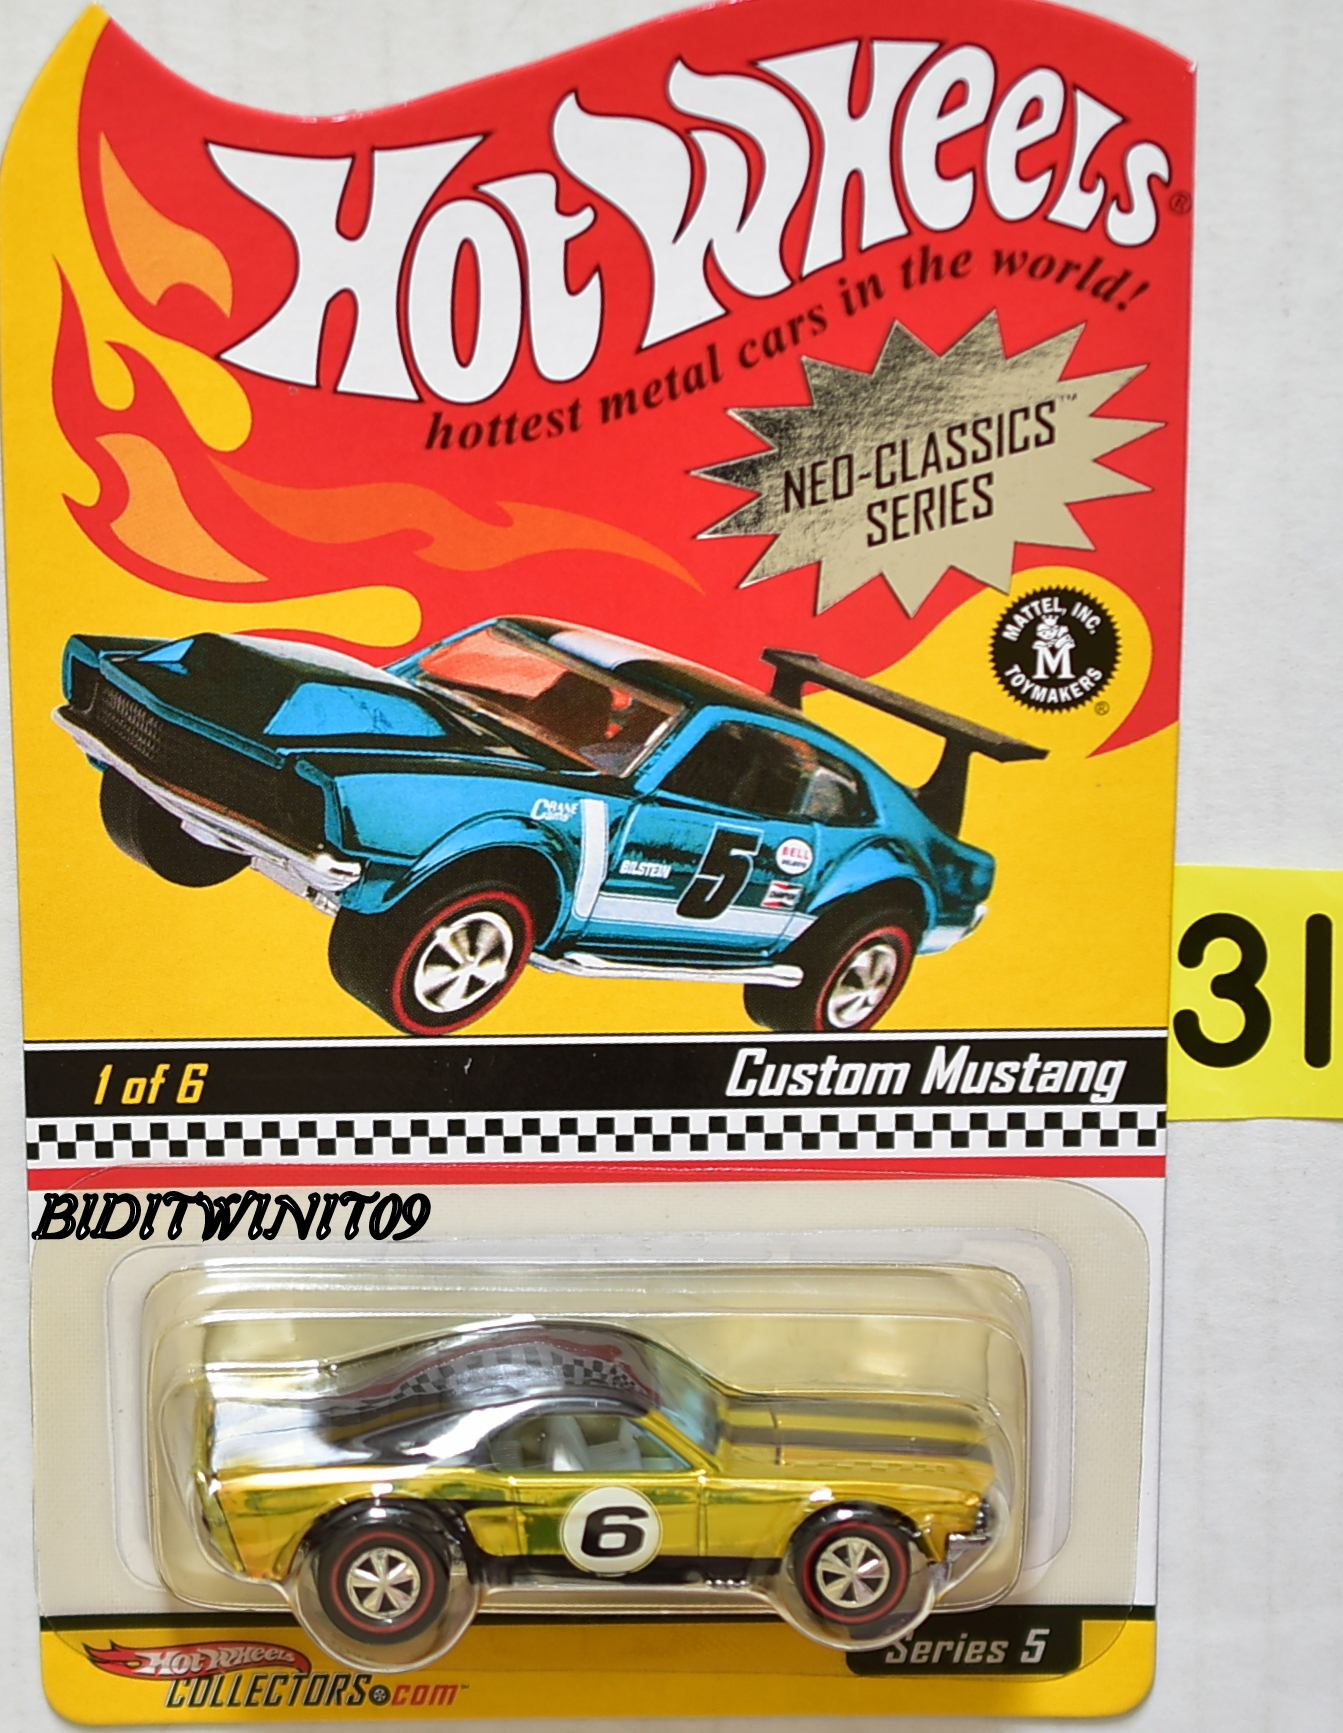 HOT WHEELS 2006 NEO-CLASSICS SERIES #1/6 SERIES 5 CUSTOM MUSTANG E+